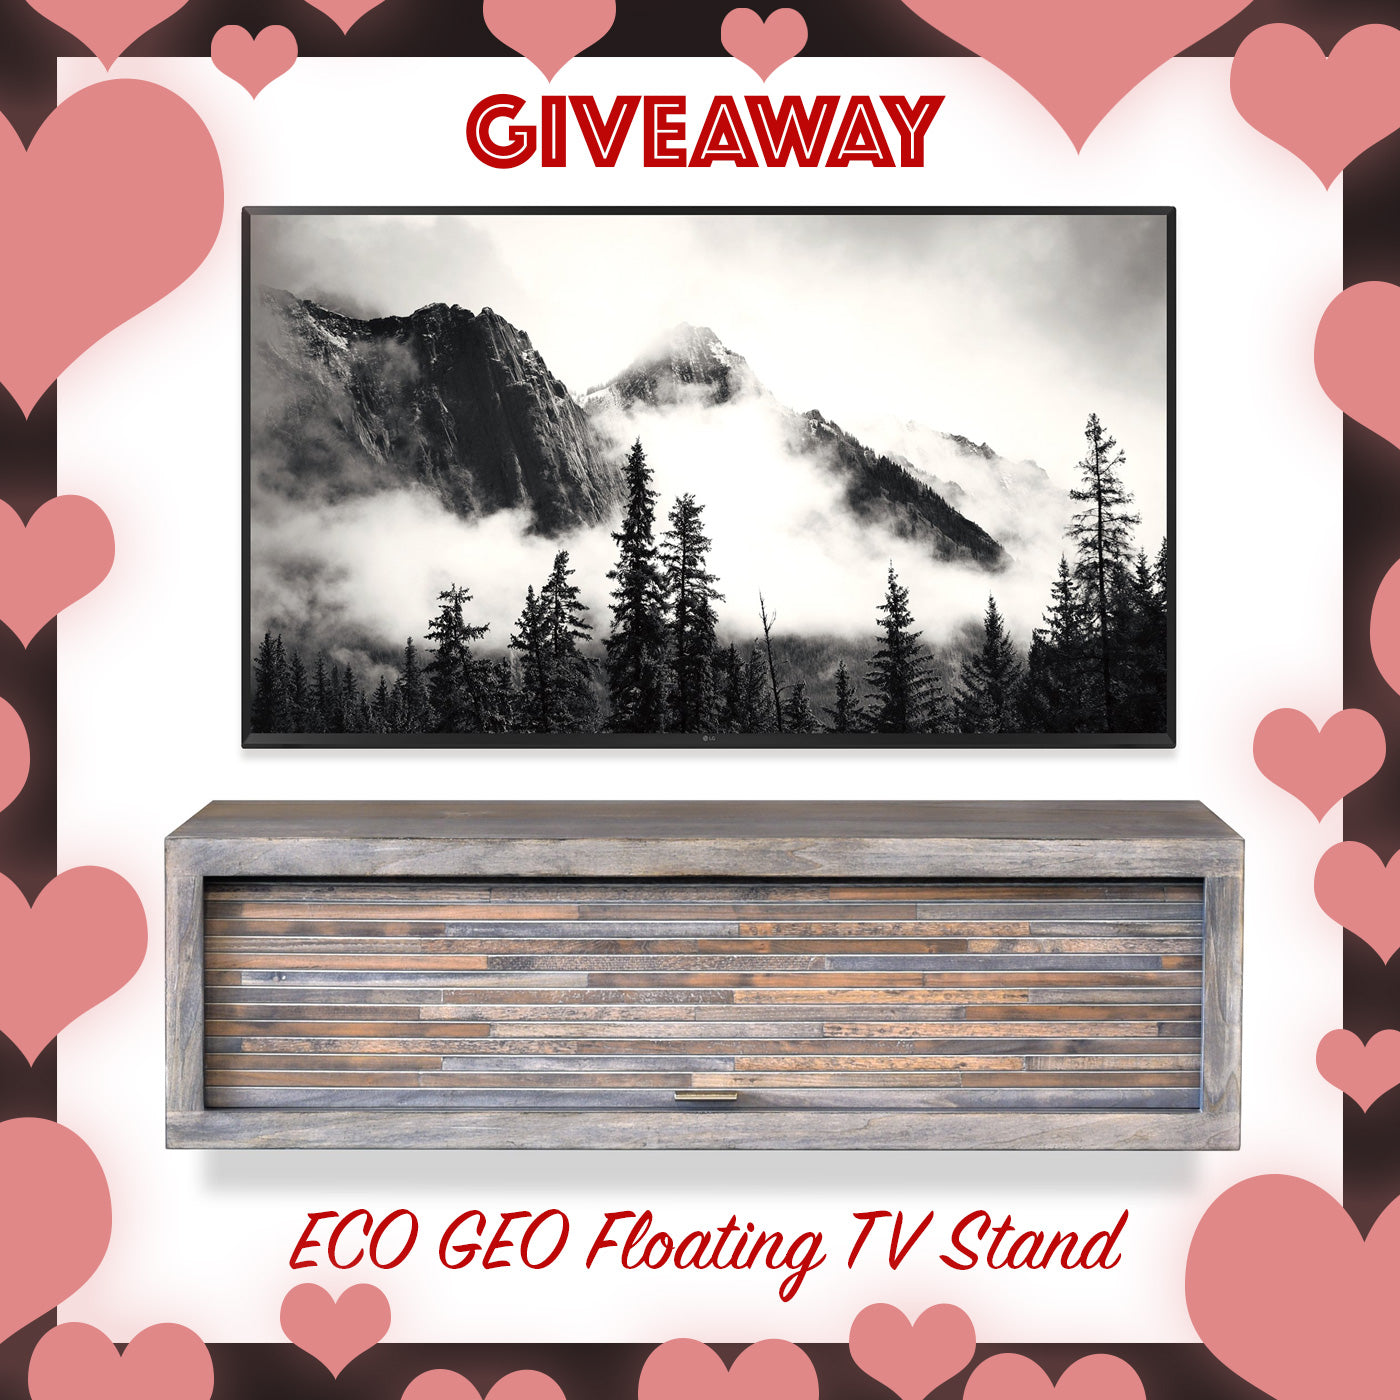 Valentine's Day ECO GEO Floating TV Stand Giveaway